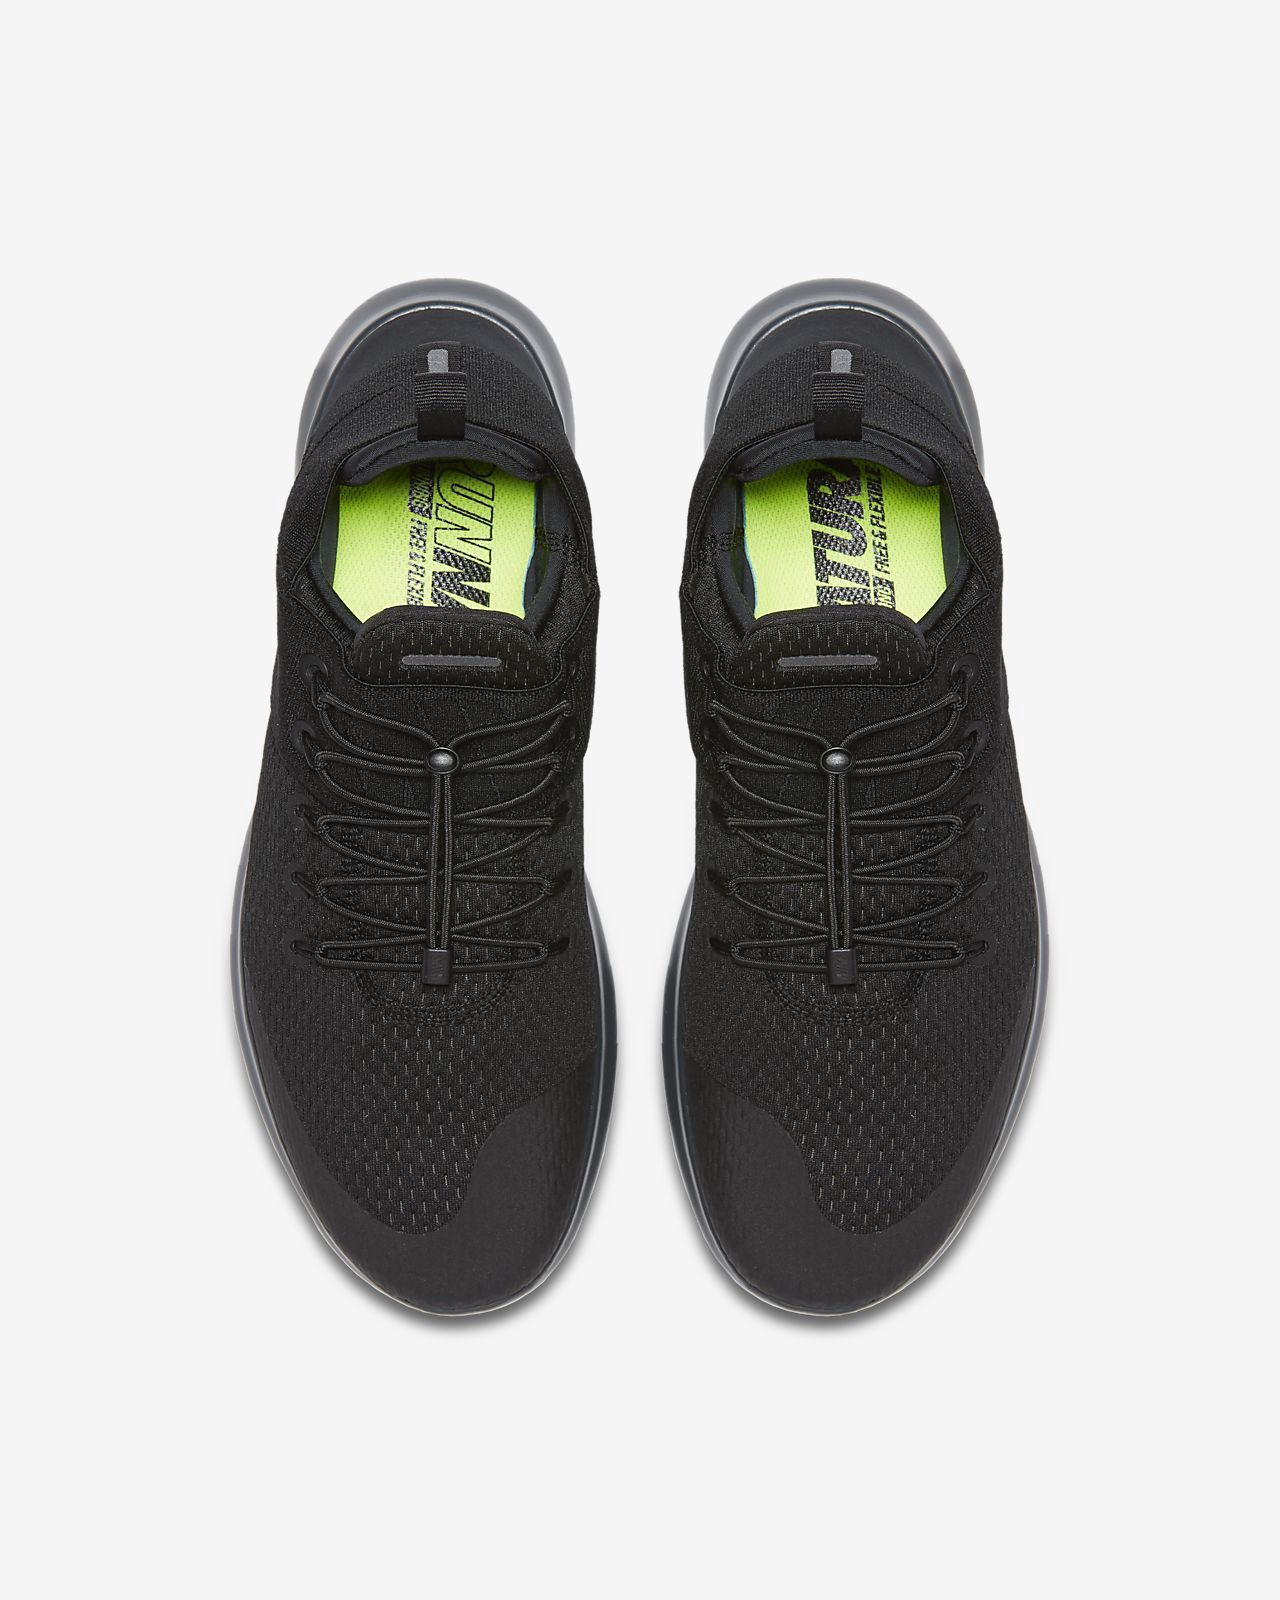 a056745e7af Nike Free RN Commuter 2017 Men s Running Shoe by Nike in 2018 ...